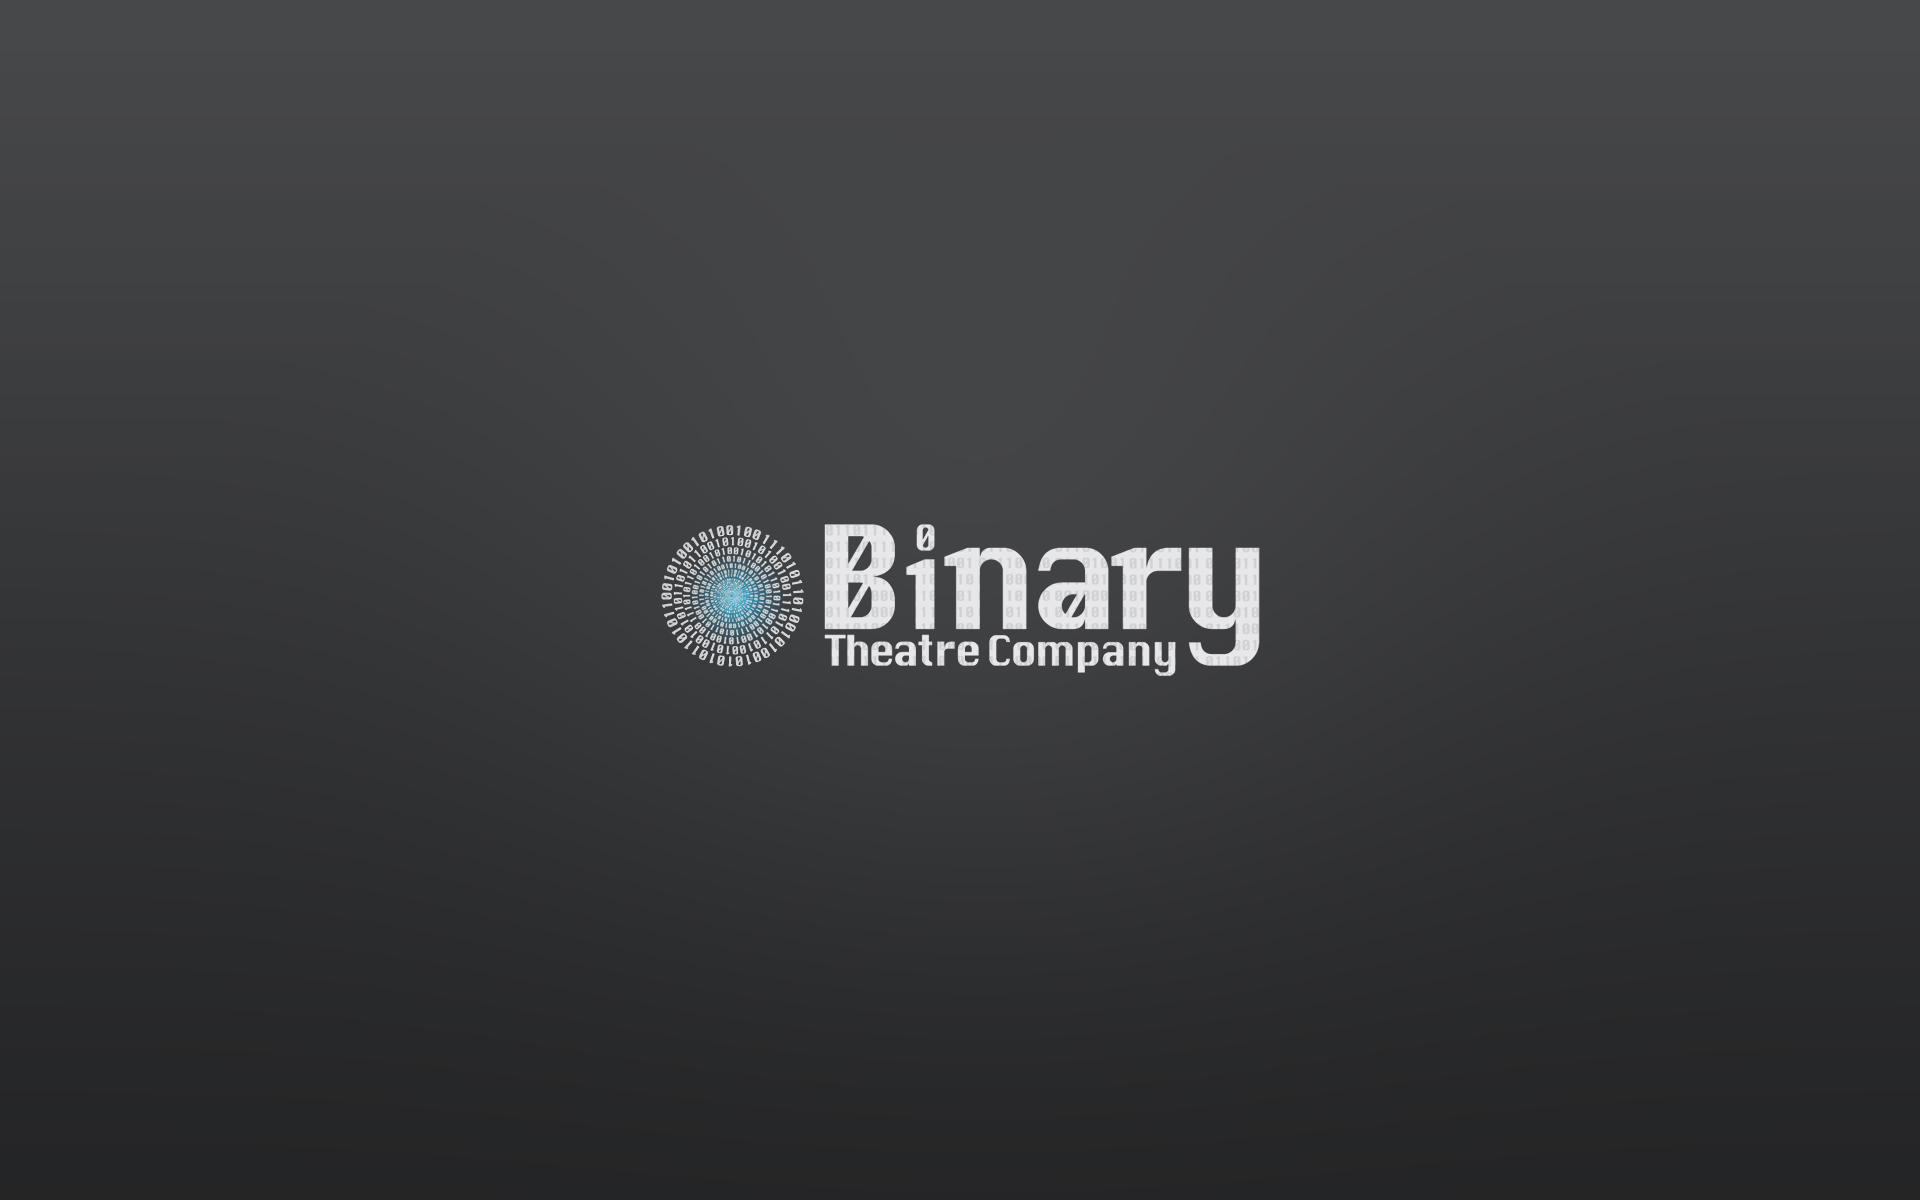 Wallpapers Binary Theatre Company